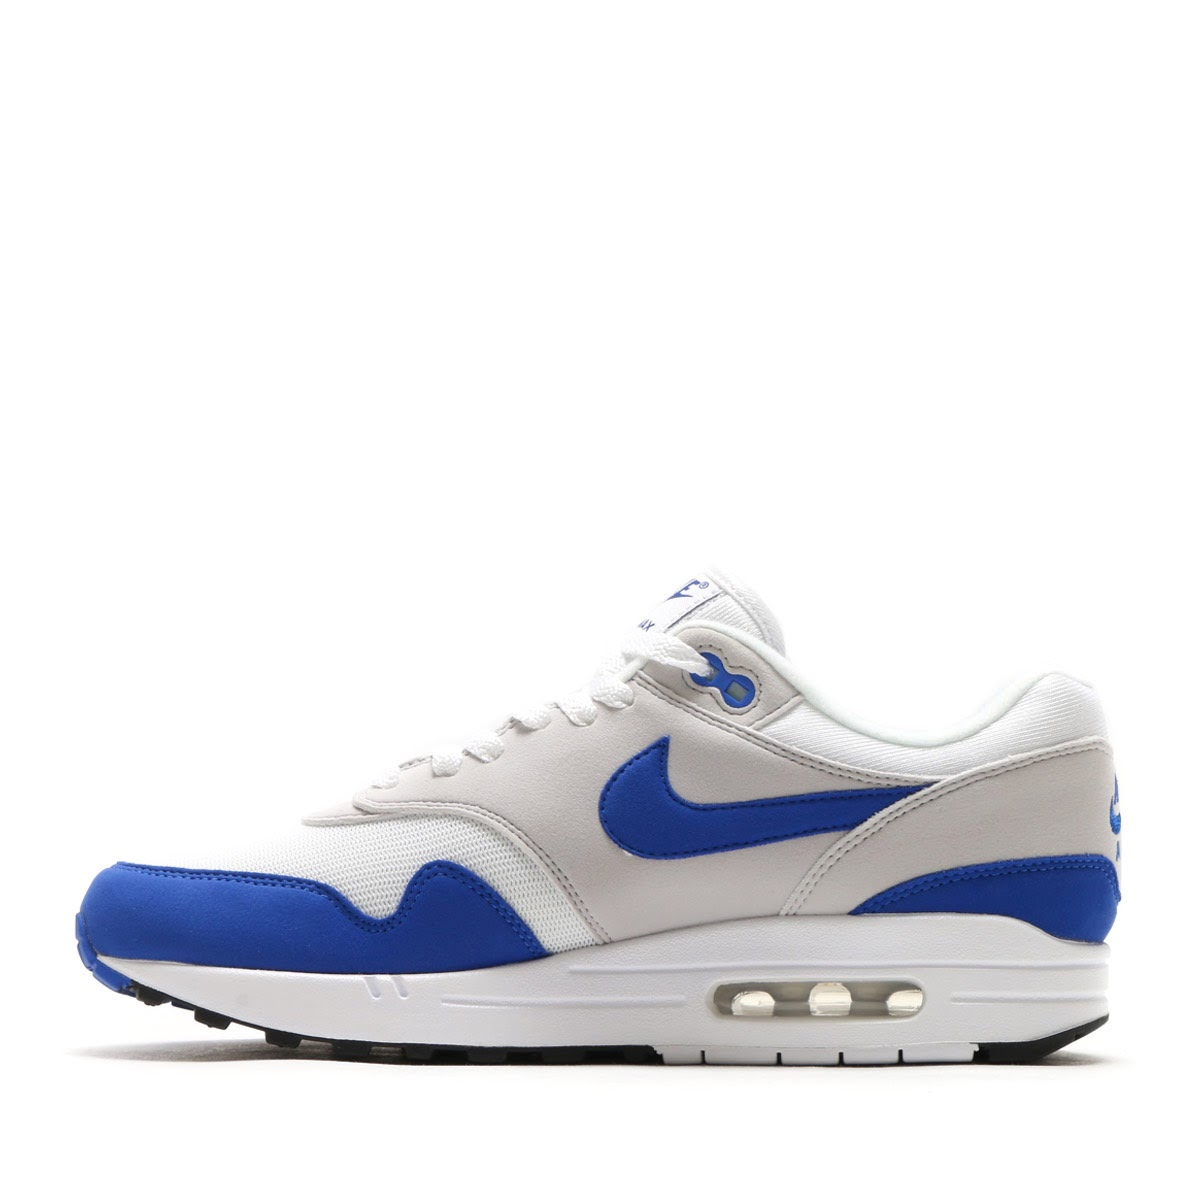 NIKE AIR MAX 1 ANNIVERSARY (Kie Ney AMAX 1 anniversary) (WHITEGAME ROYAL NEUTRAL GREY BLACK) 17HO S